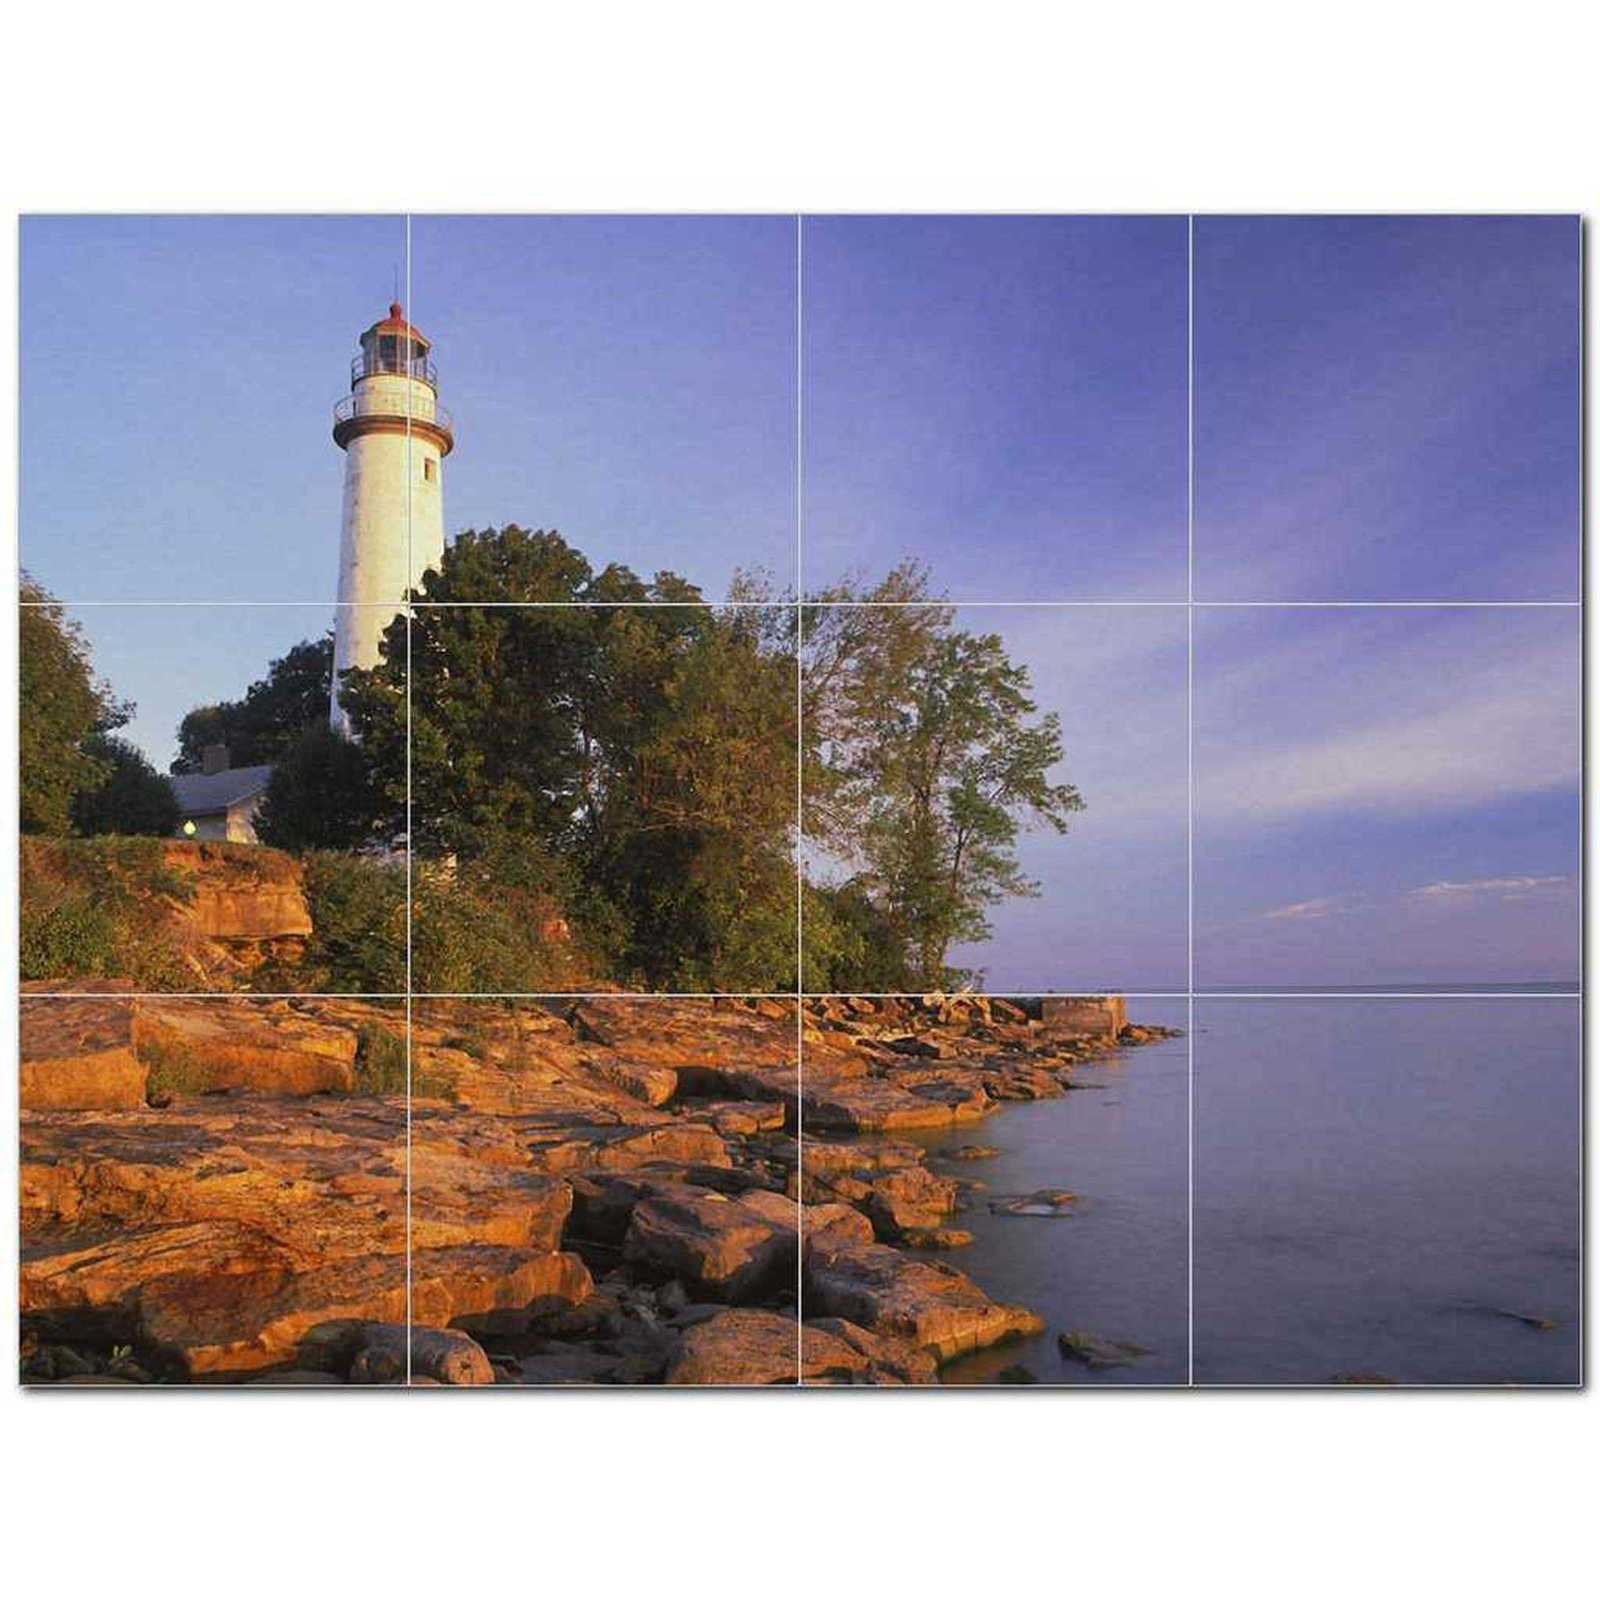 Primary image for Lighthouse Photo Ceramic Tile Mural Kitchen Backsplash Bathroom Shower BAZ405448